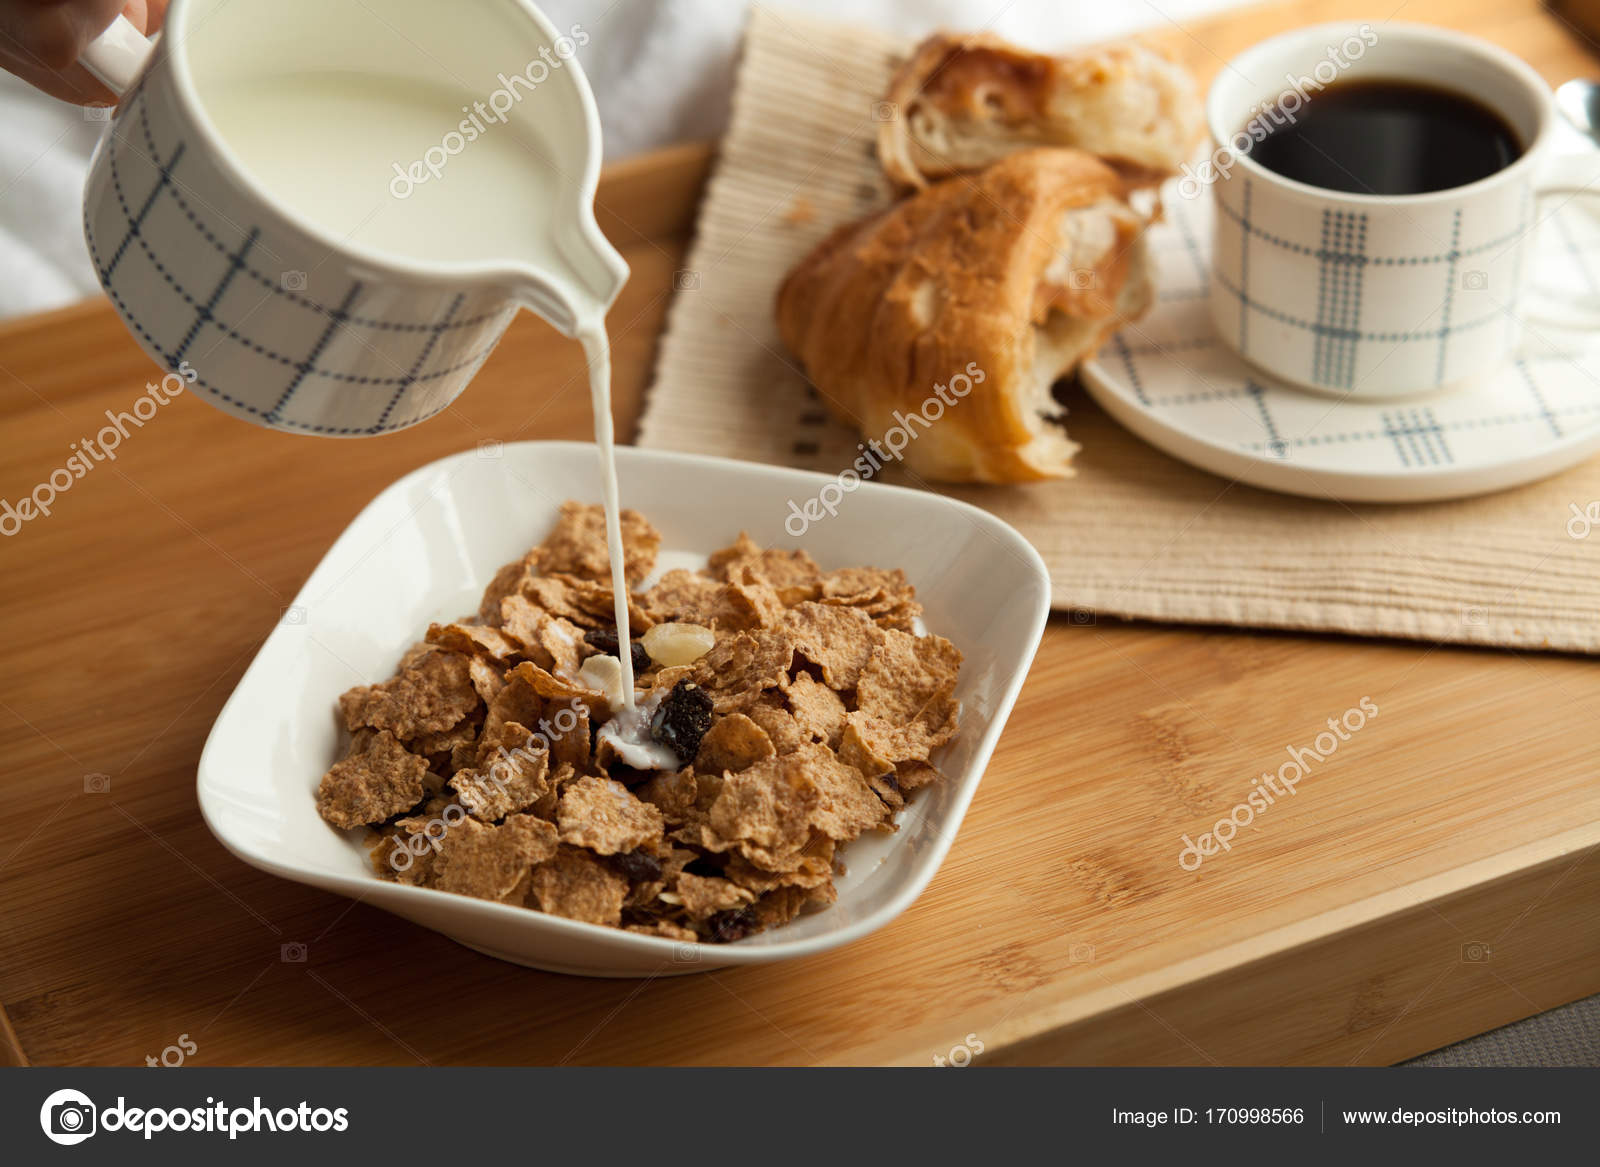 Healthy Breakfast In Bed With Coffee Stock Photo C Dturphoto 170998566